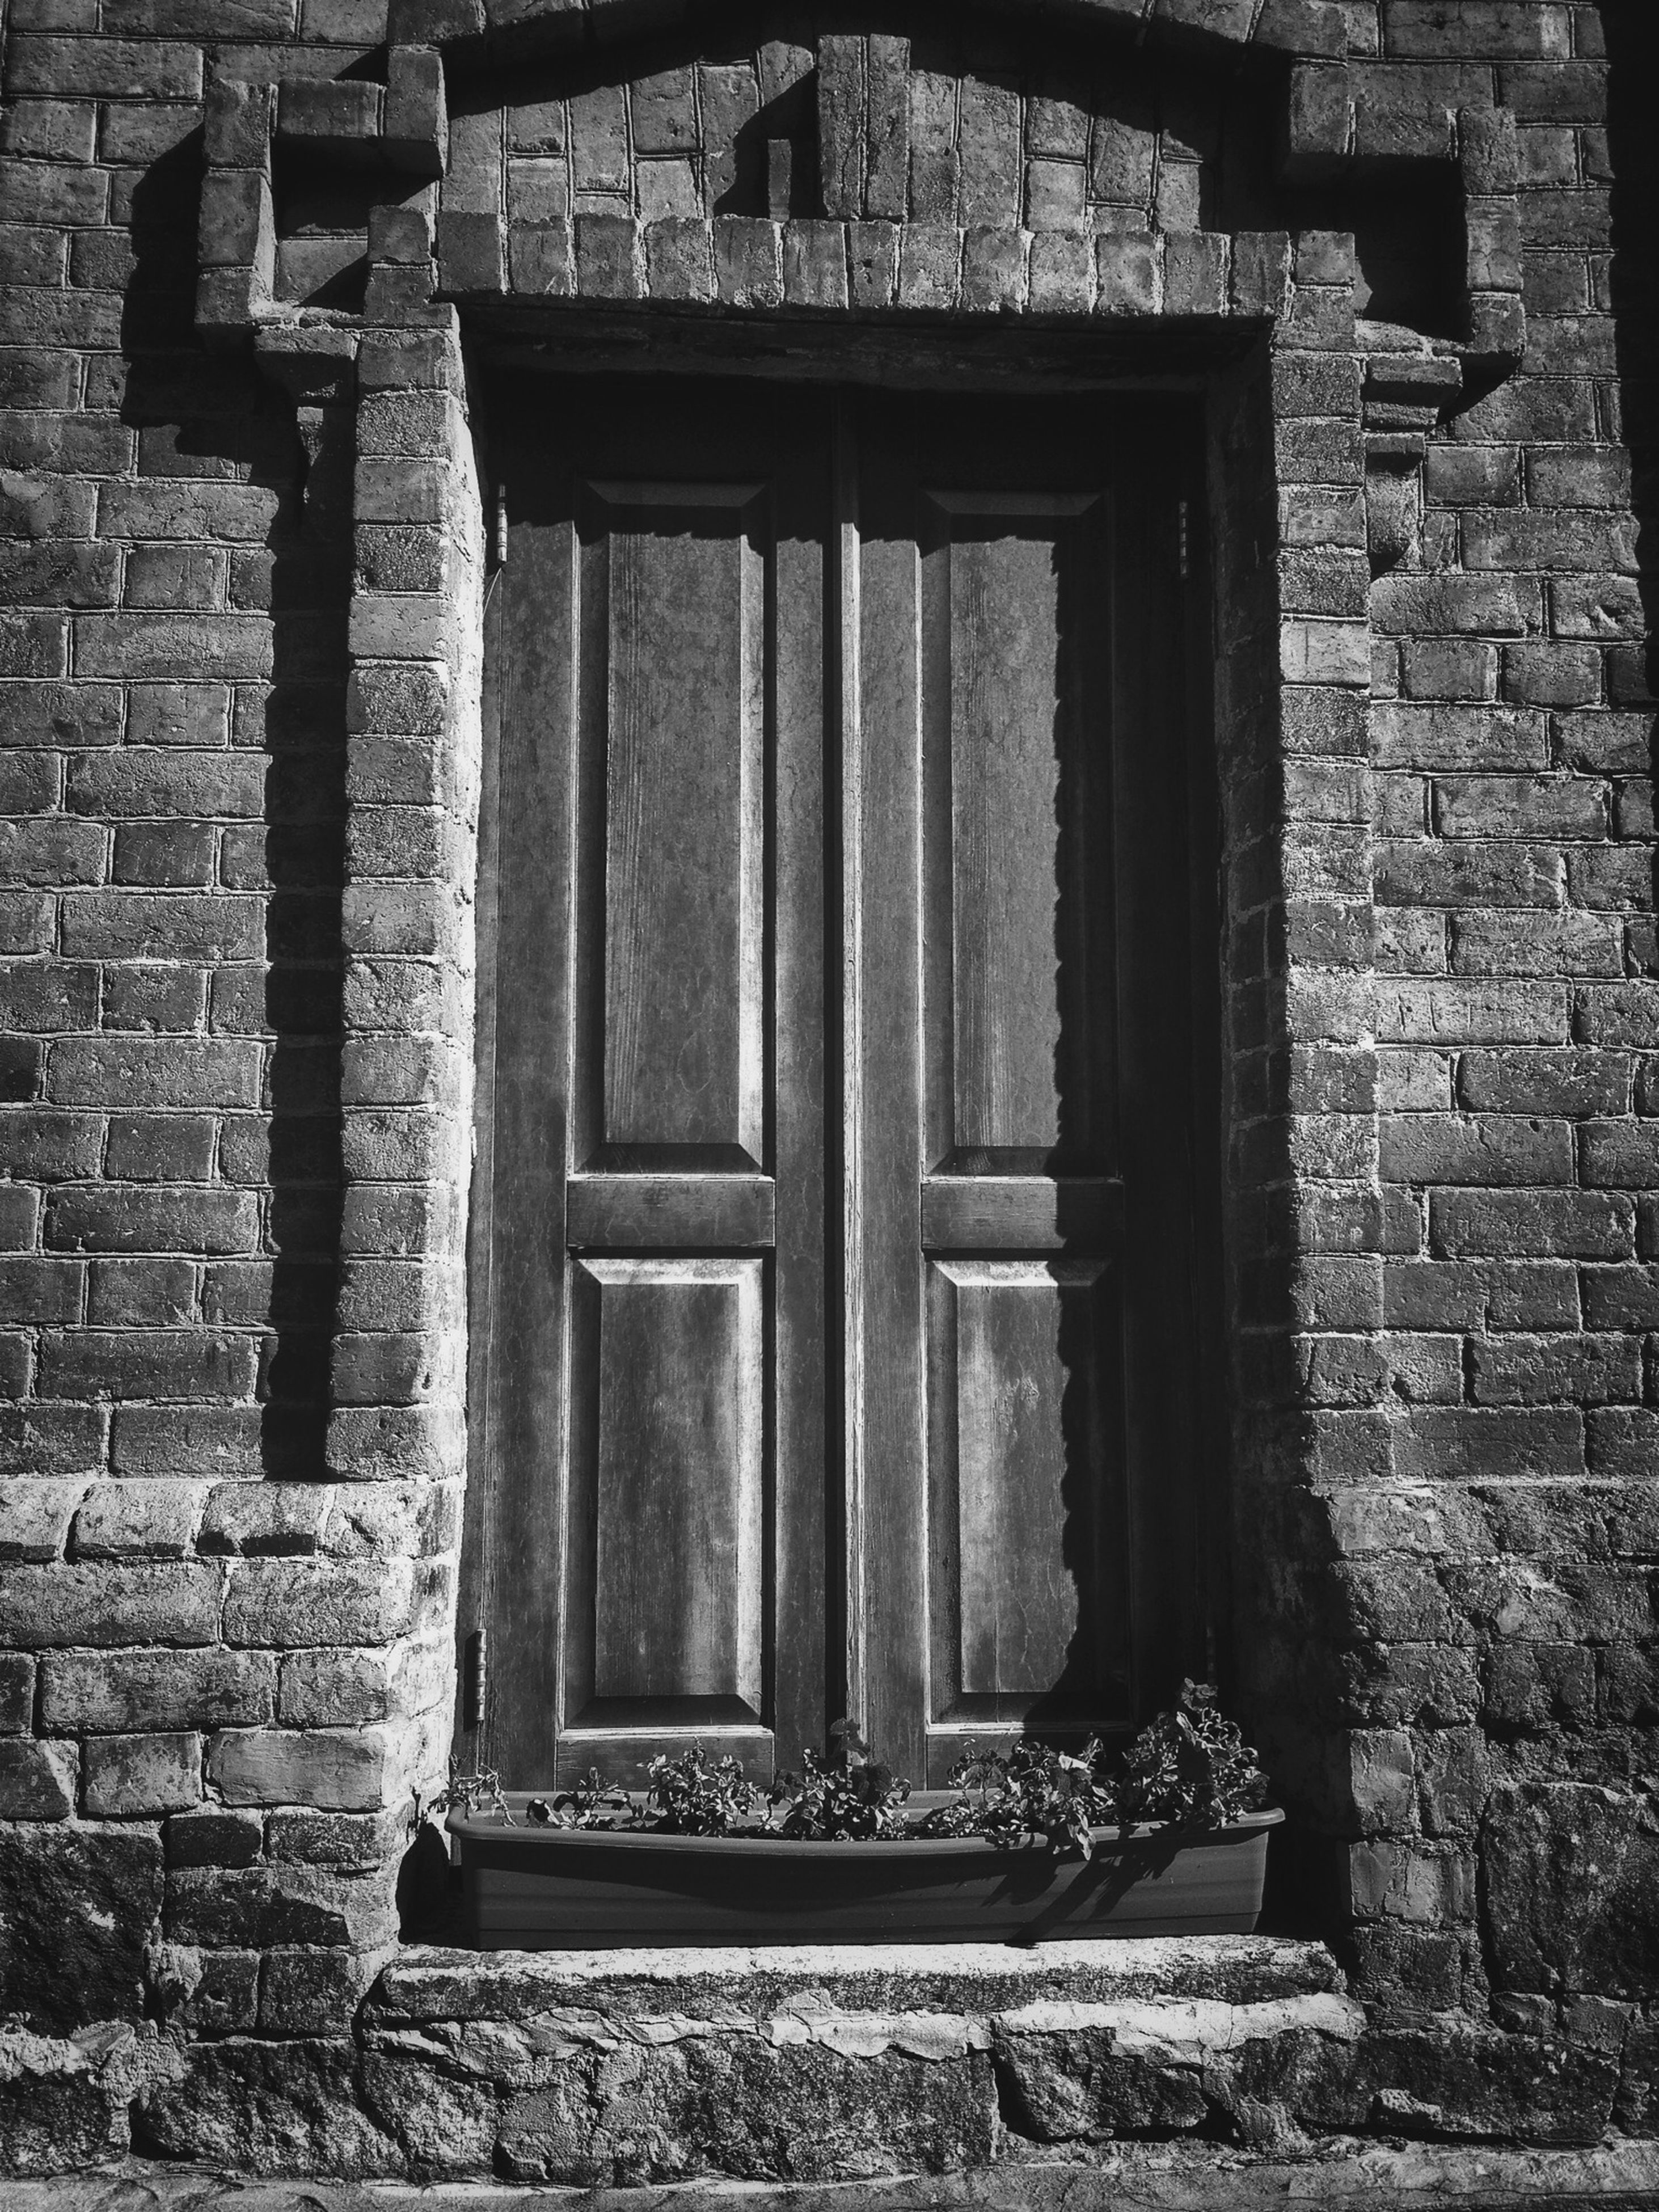 building exterior, architecture, built structure, window, brick wall, house, door, closed, old, entrance, wall - building feature, residential structure, stone wall, residential building, weathered, wall, outdoors, day, facade, no people